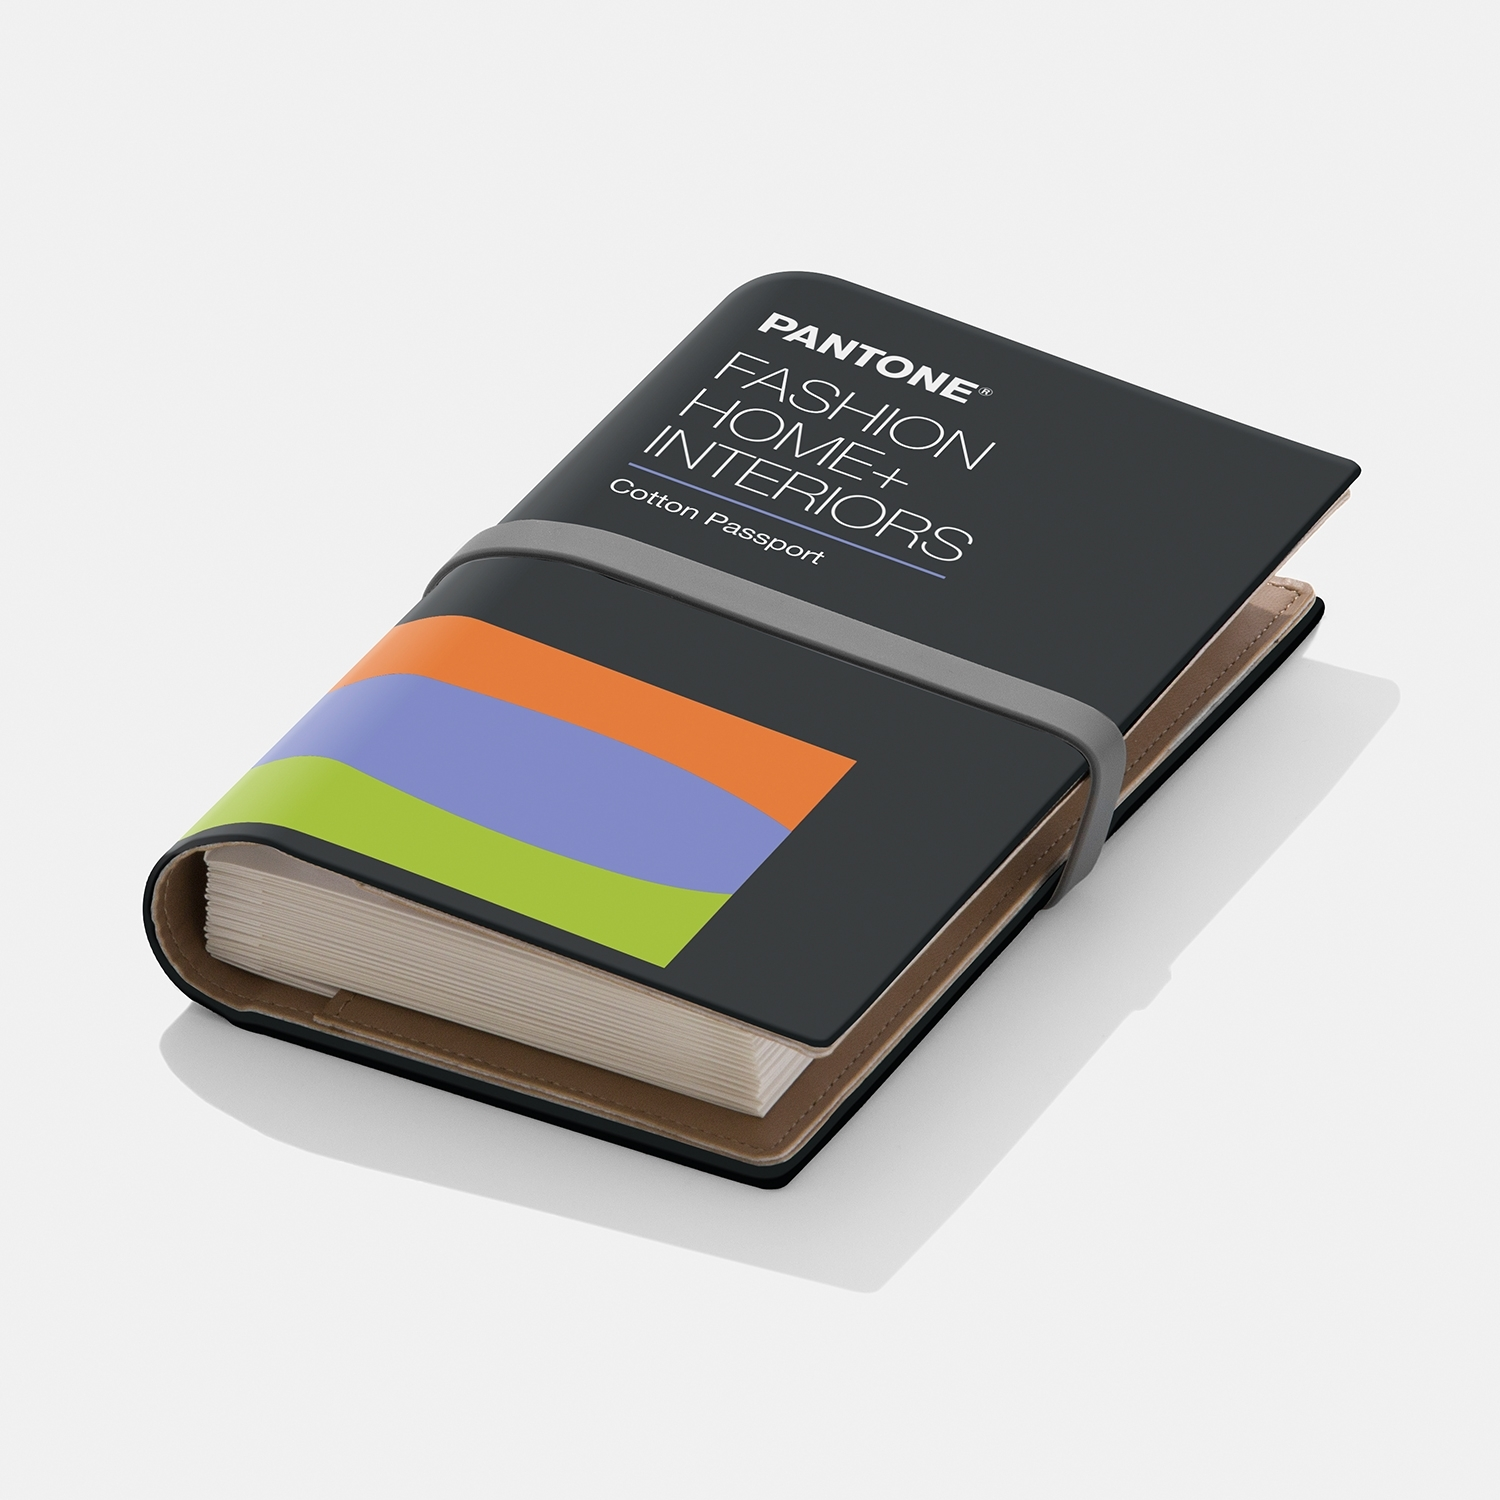 Pantone FHI Cotton Passport 2019 edition Take your creativity to new places with Pantone Colors on cotton, to go - View 1